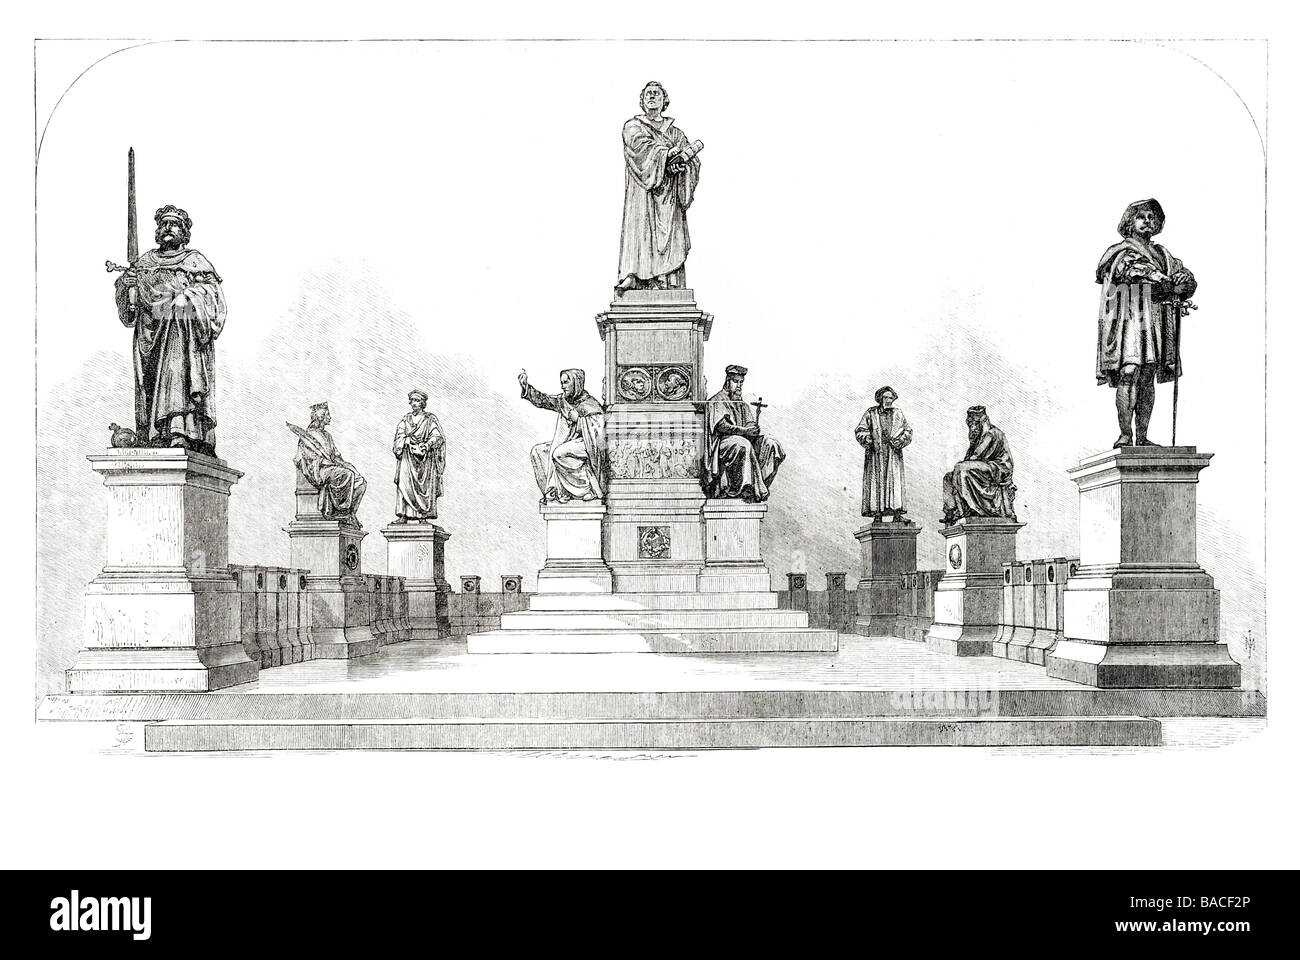 the luther monument at worms germany 1868 Protestantism Christianity German monk - Stock Image